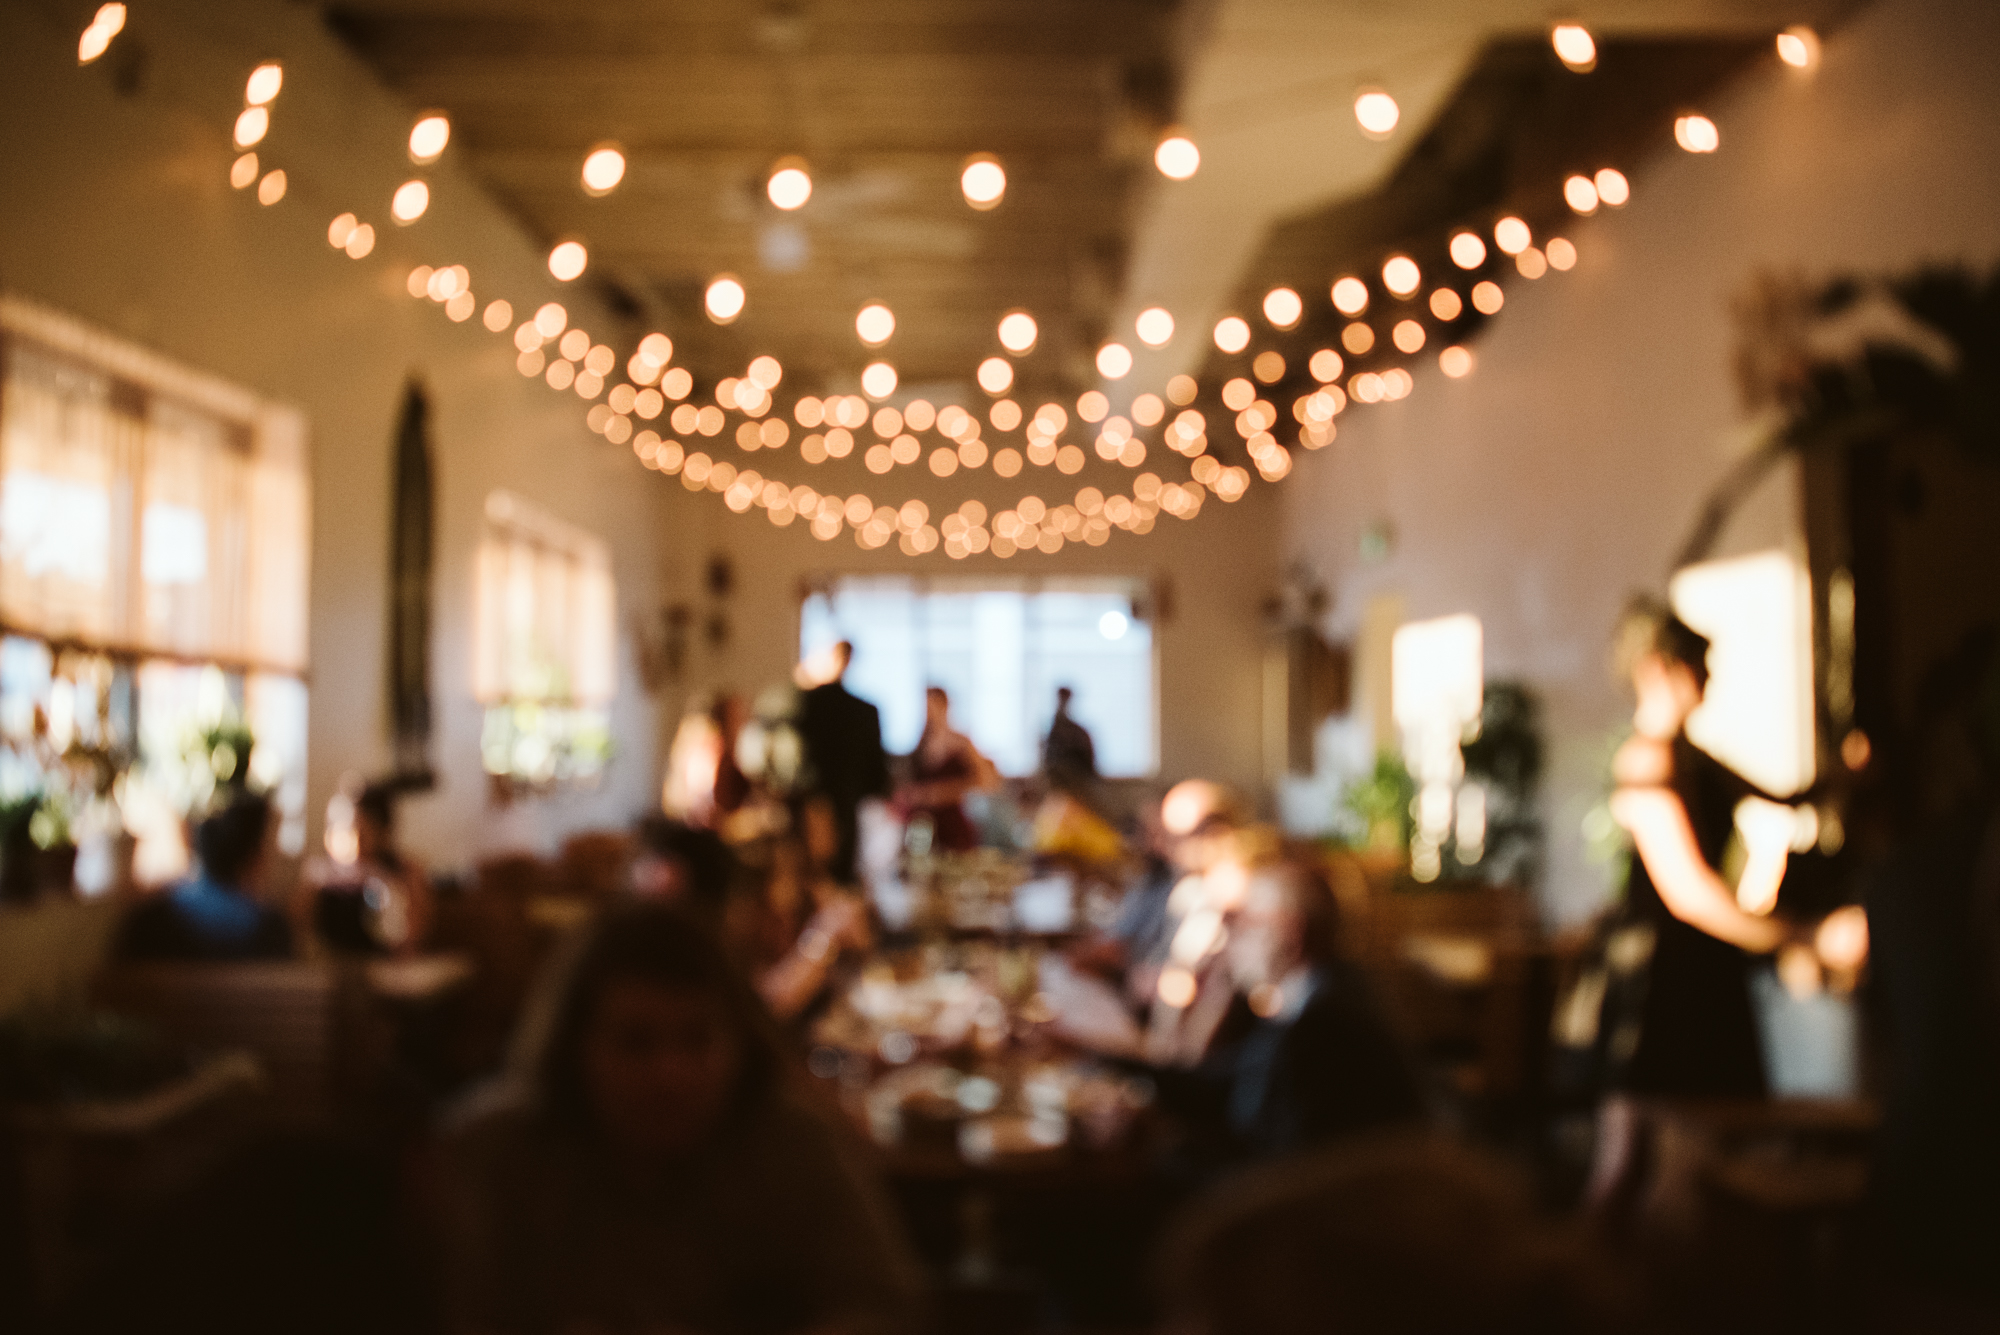 Outdoor Wedding, Casual, Simple, Baltimore, Maryland Wedding Photographer, Laid Back, September Wedding, String Lights at Reception, Clavel